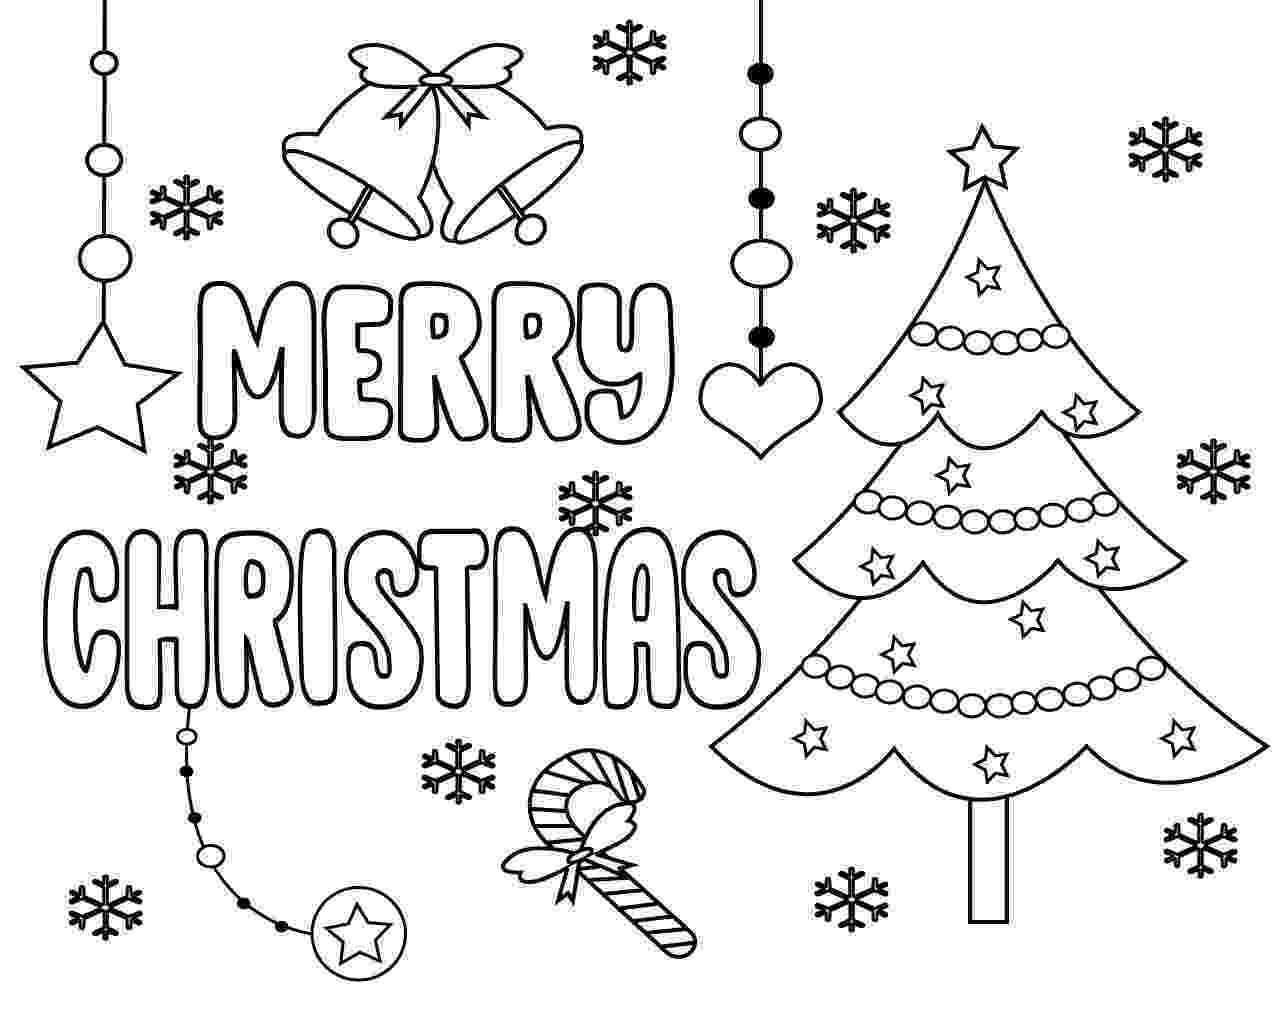 merry christmas coloring sheet free coloring pages printable pictures to color kids christmas sheet coloring merry